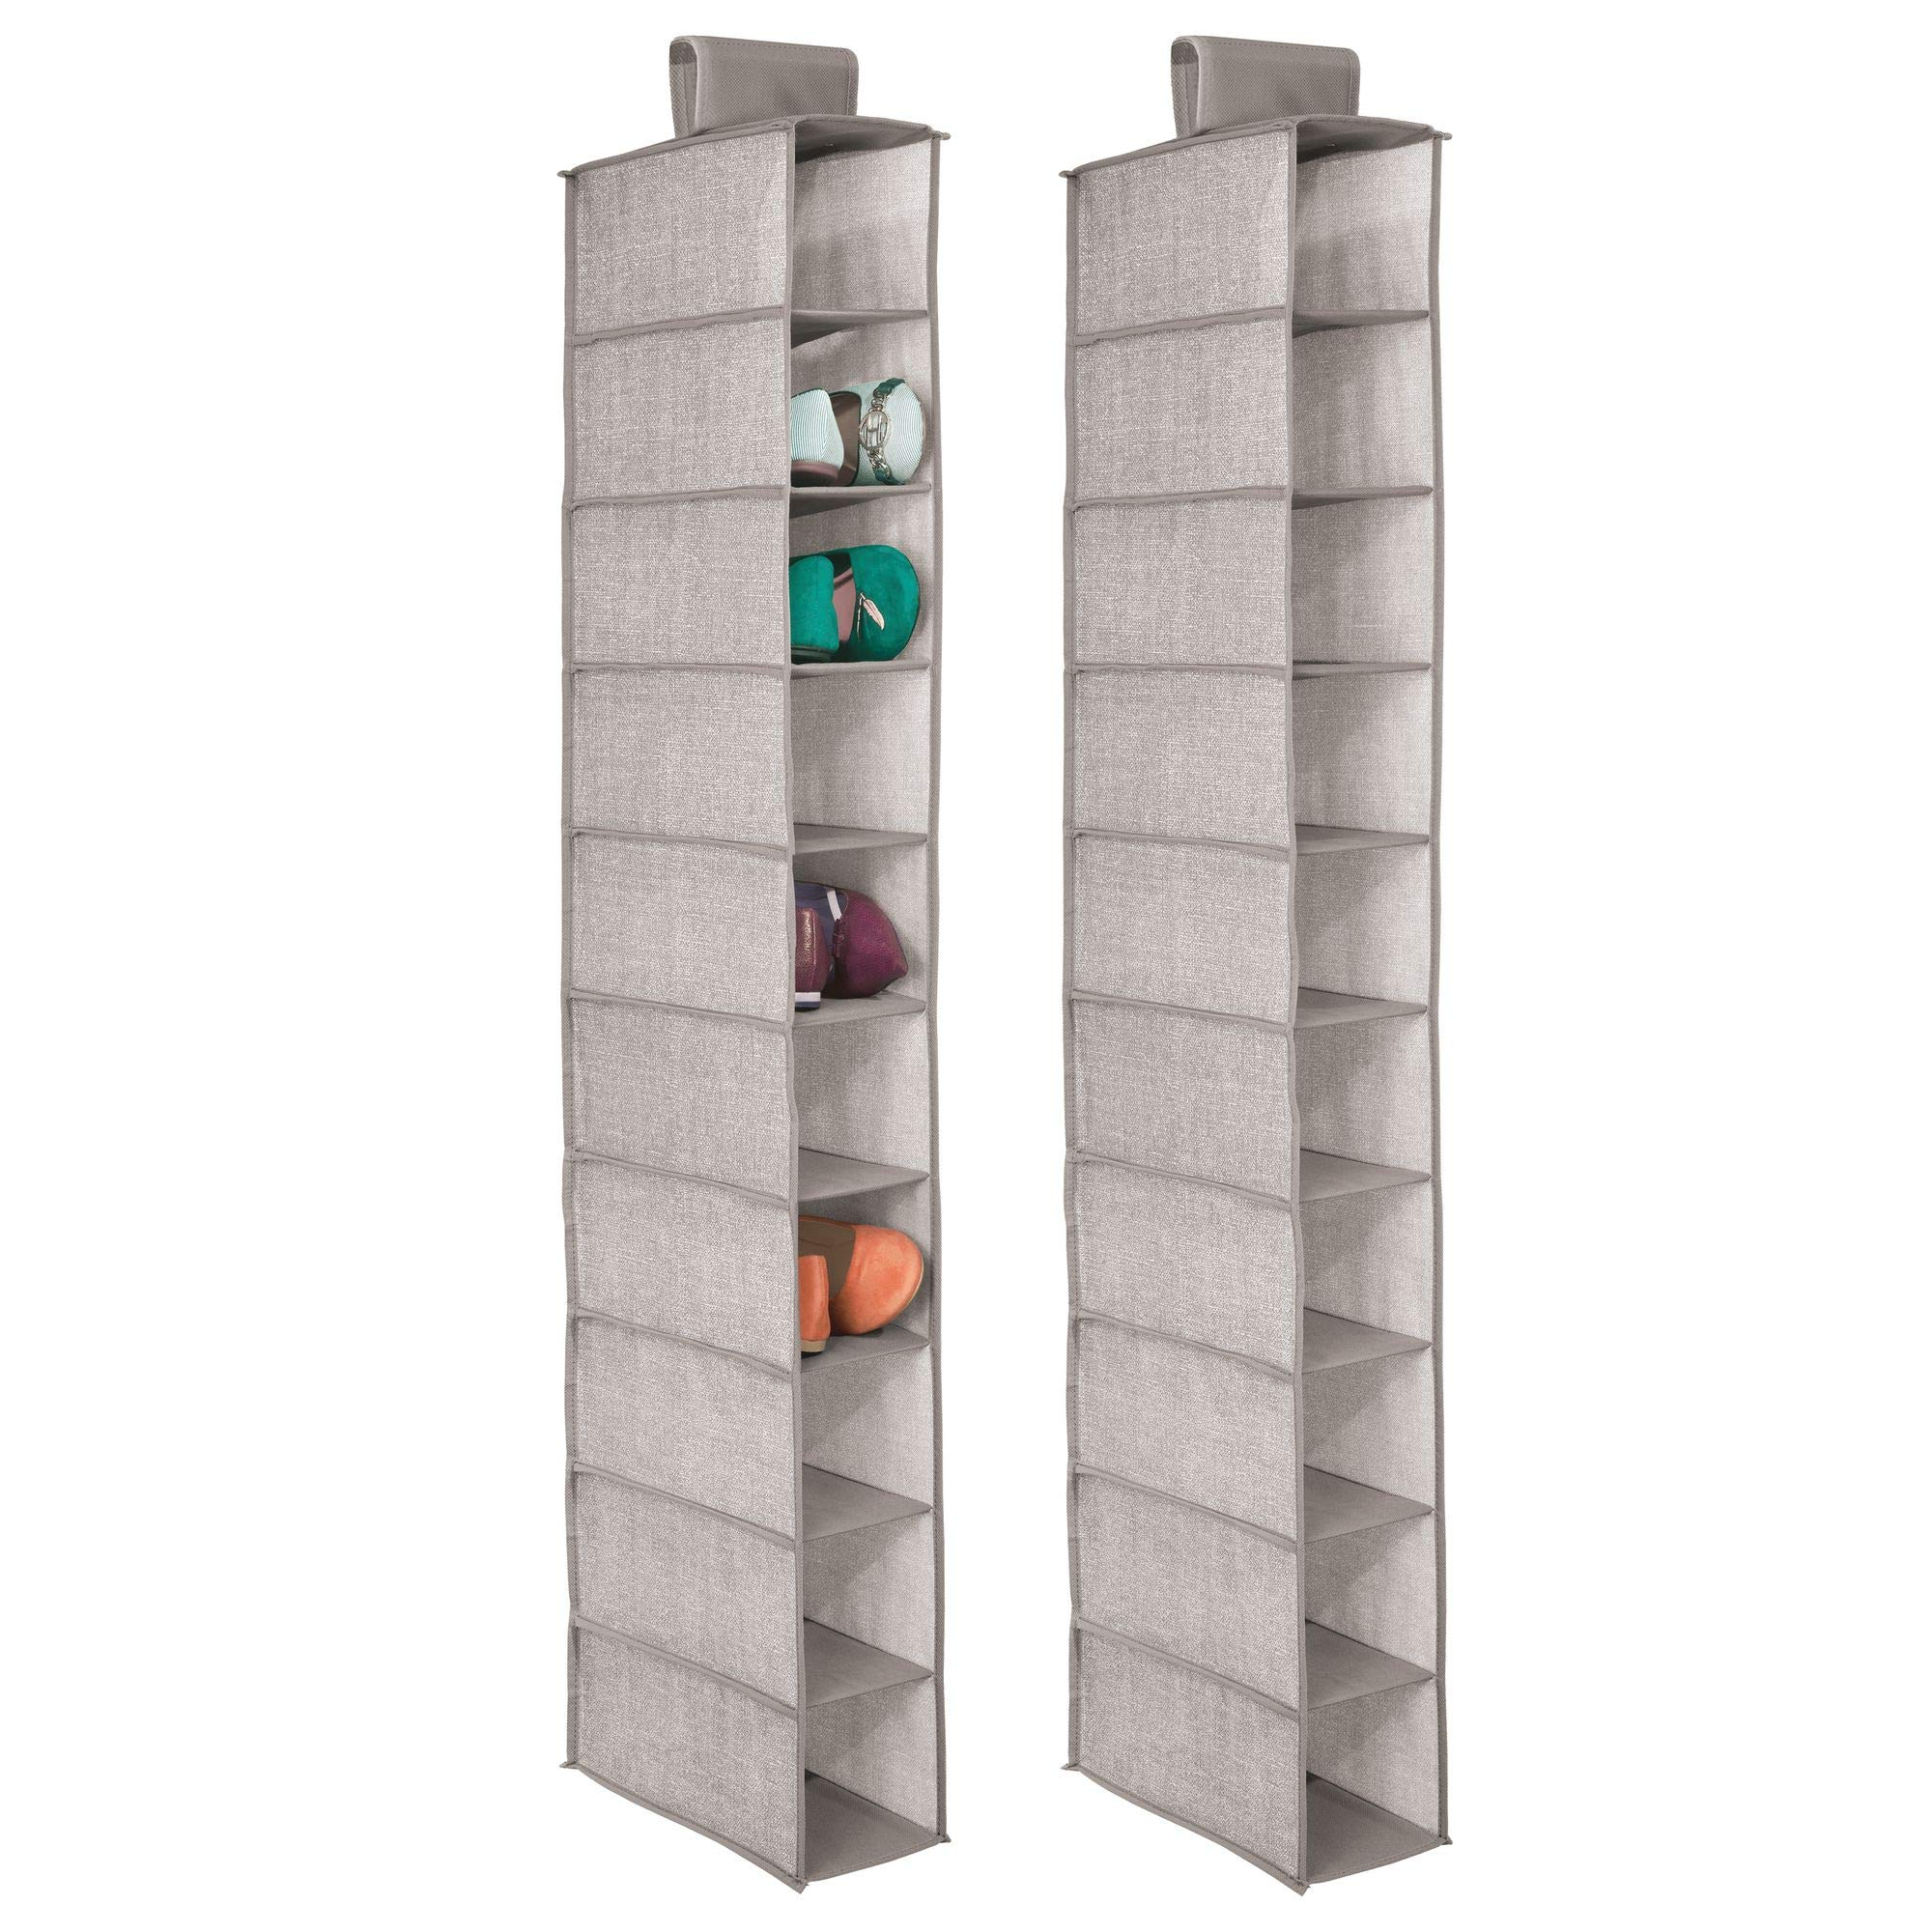 mDesign Soft Fabric Closet Organizer - Holds Shoes Handbags, Clutches, Accessories - 10 Shelves in Each Over Rod Hanging Storage Unit - Pack of 2, Textured Print, Solid Trim in Linen